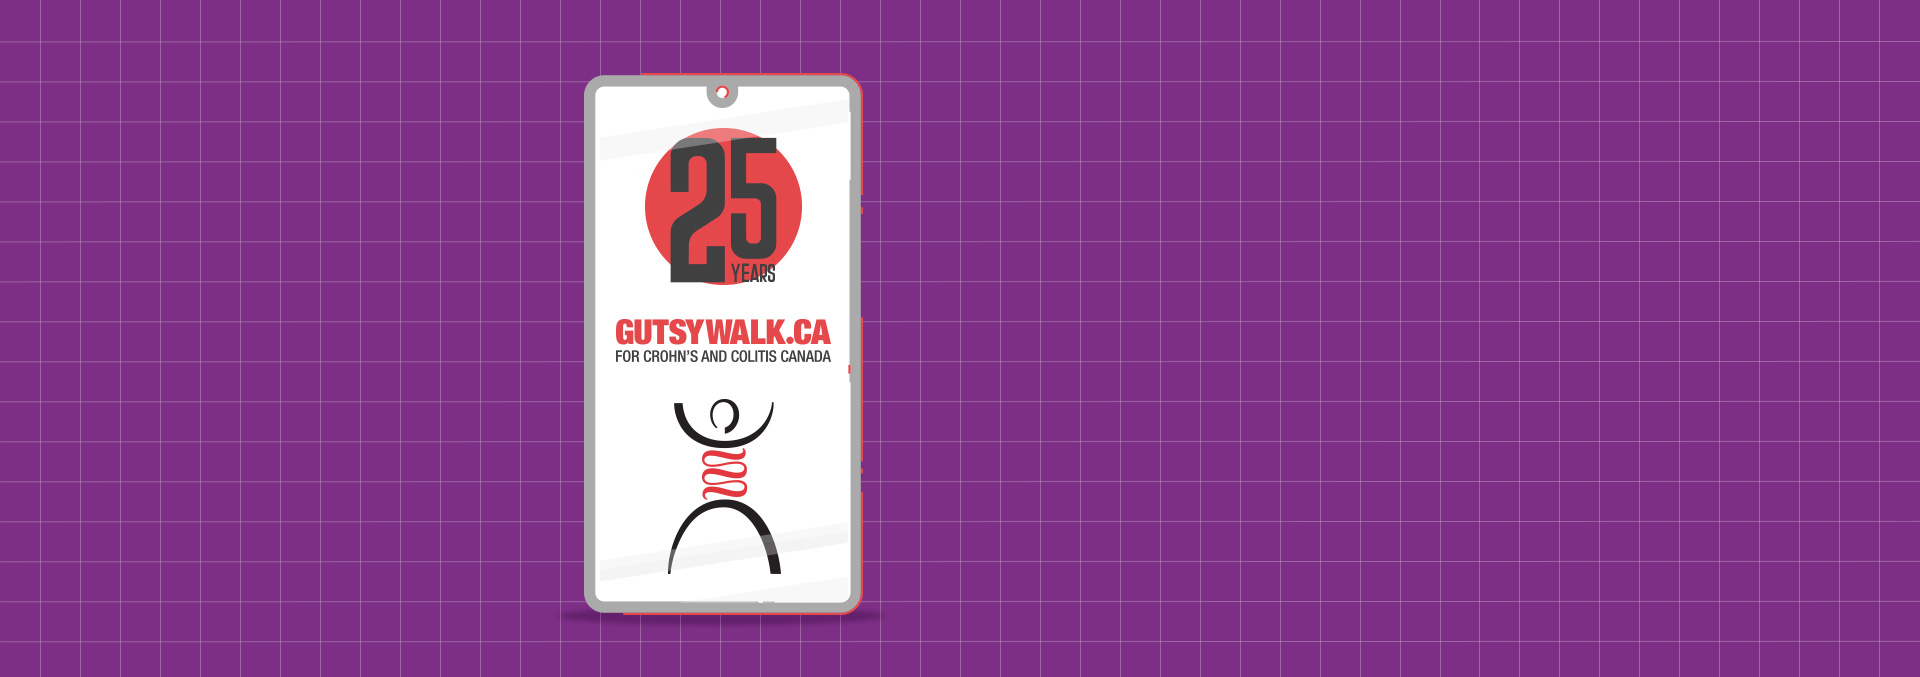 "A mobile phone showing, ""25 years - GutsyWalk.ca for Crohn's and colitis Canada"""